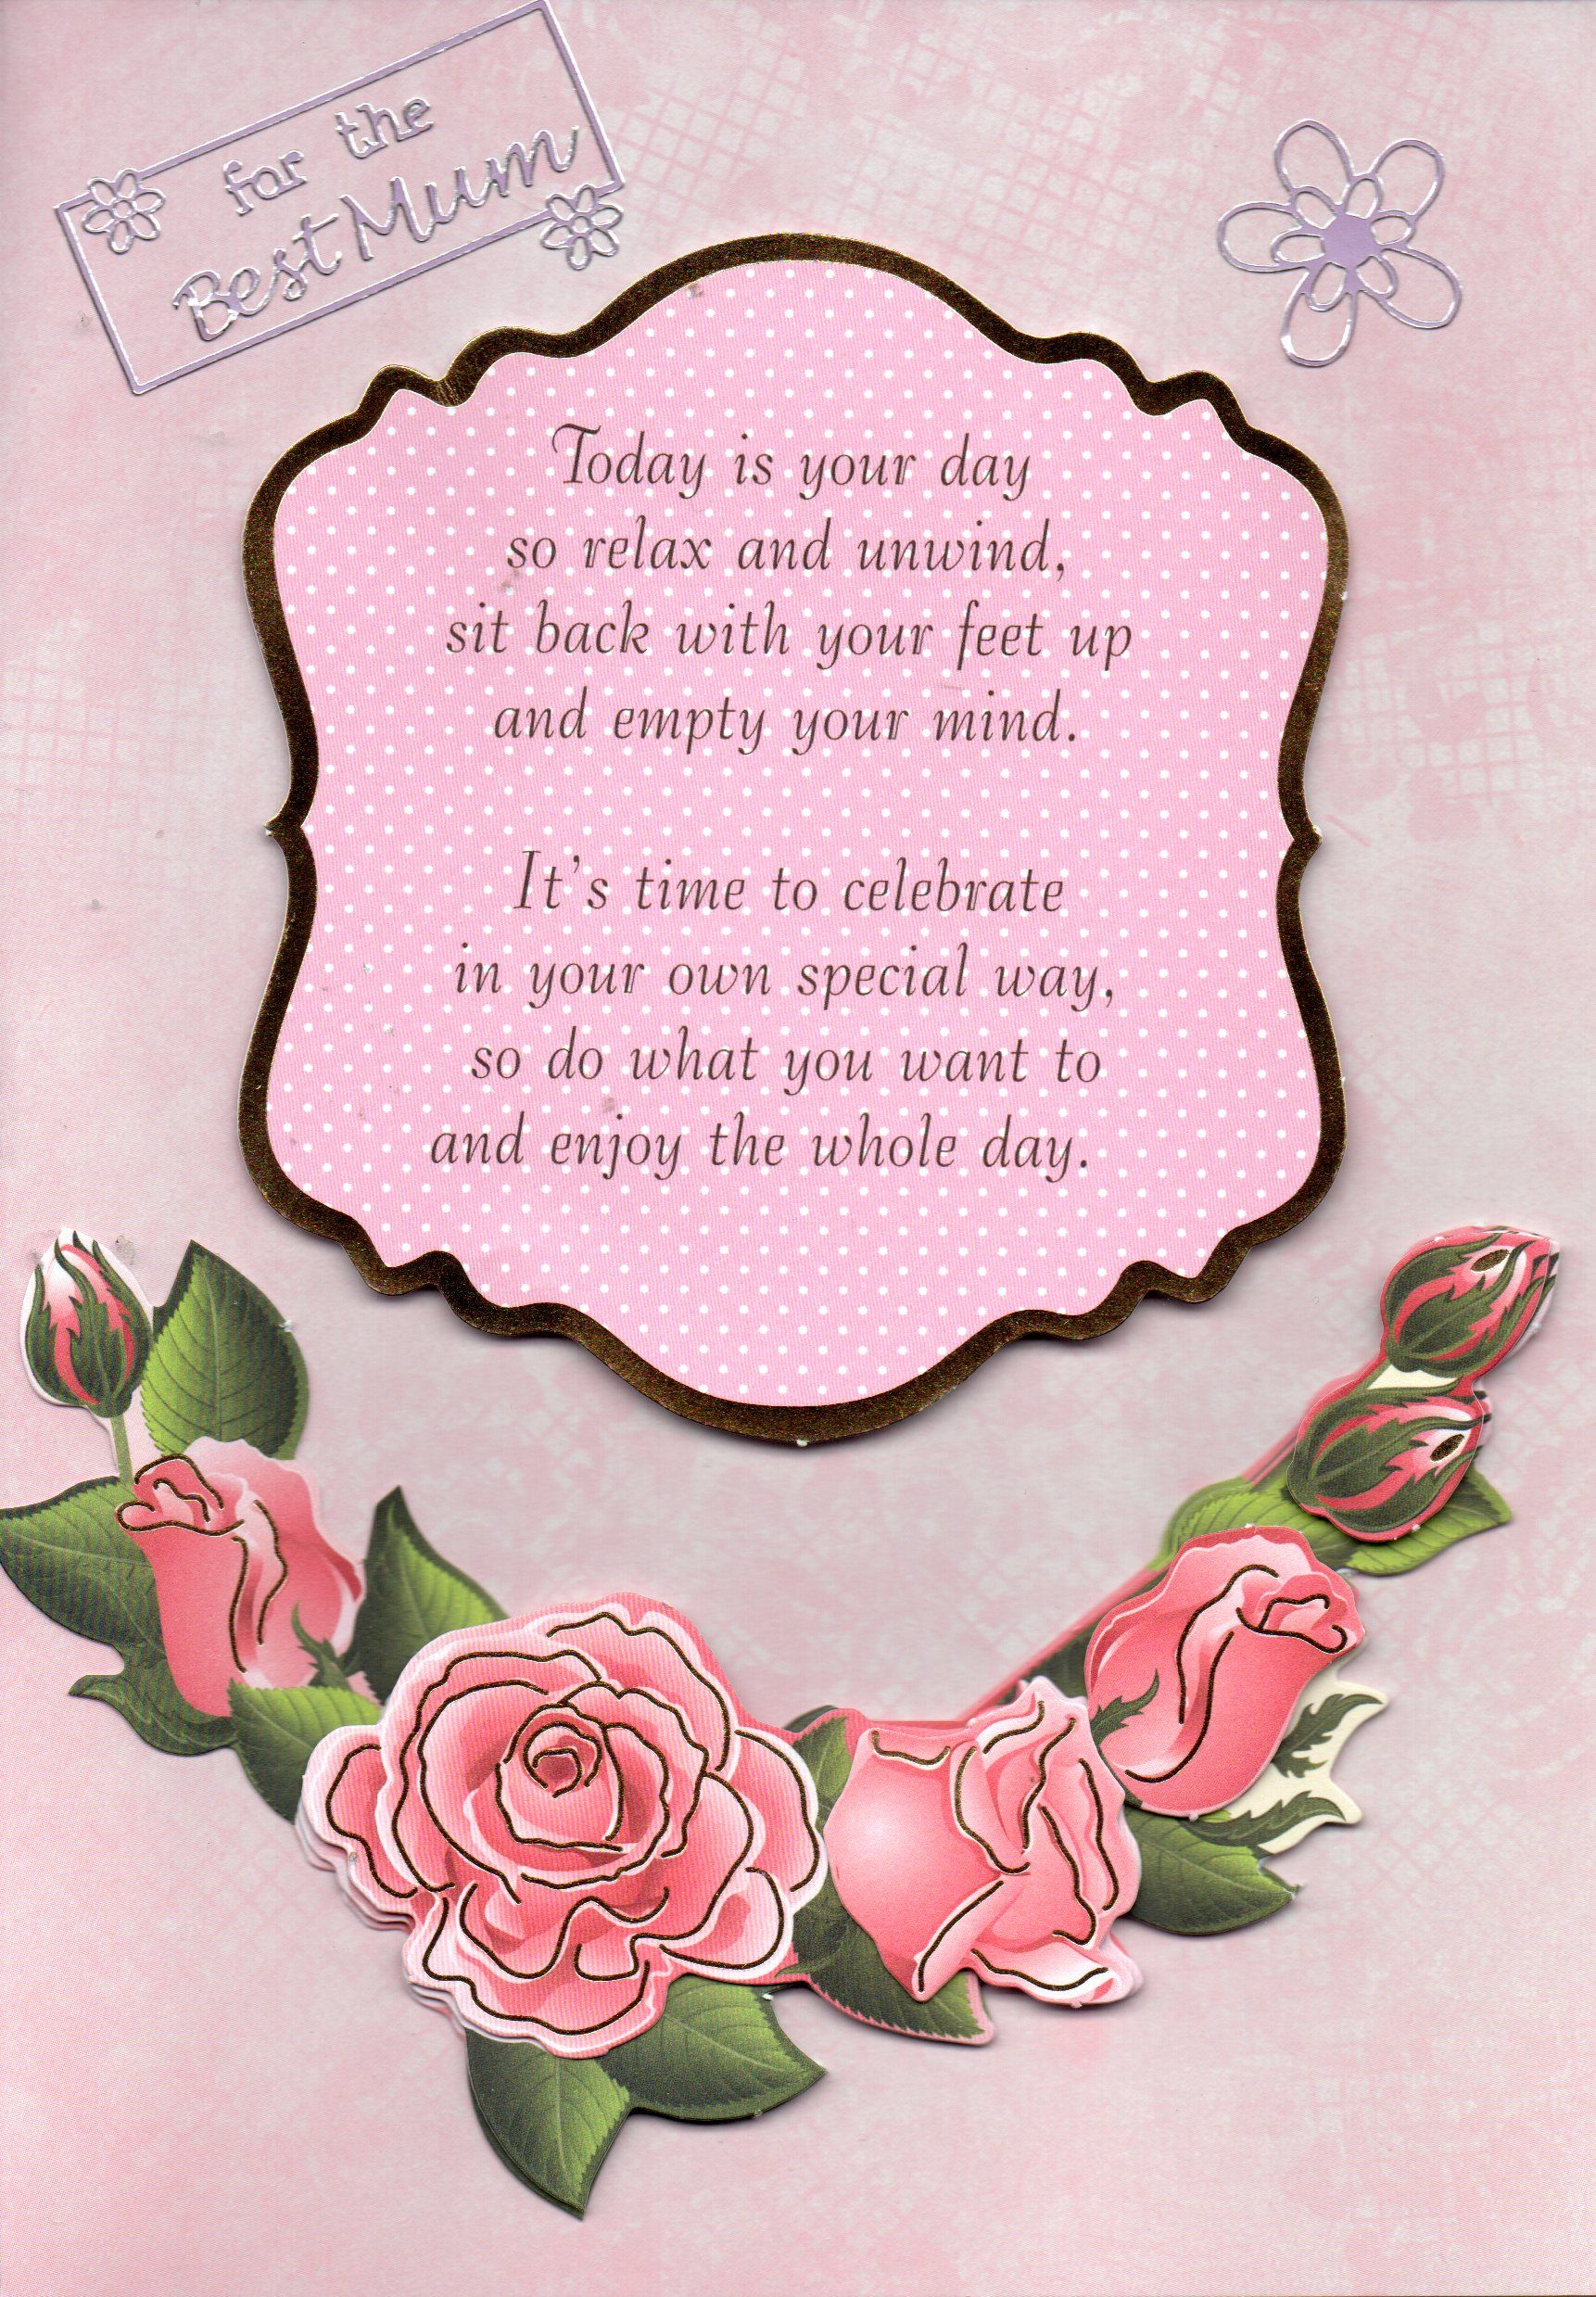 Pink Roses Handmade Card Featuring The Message 'for The